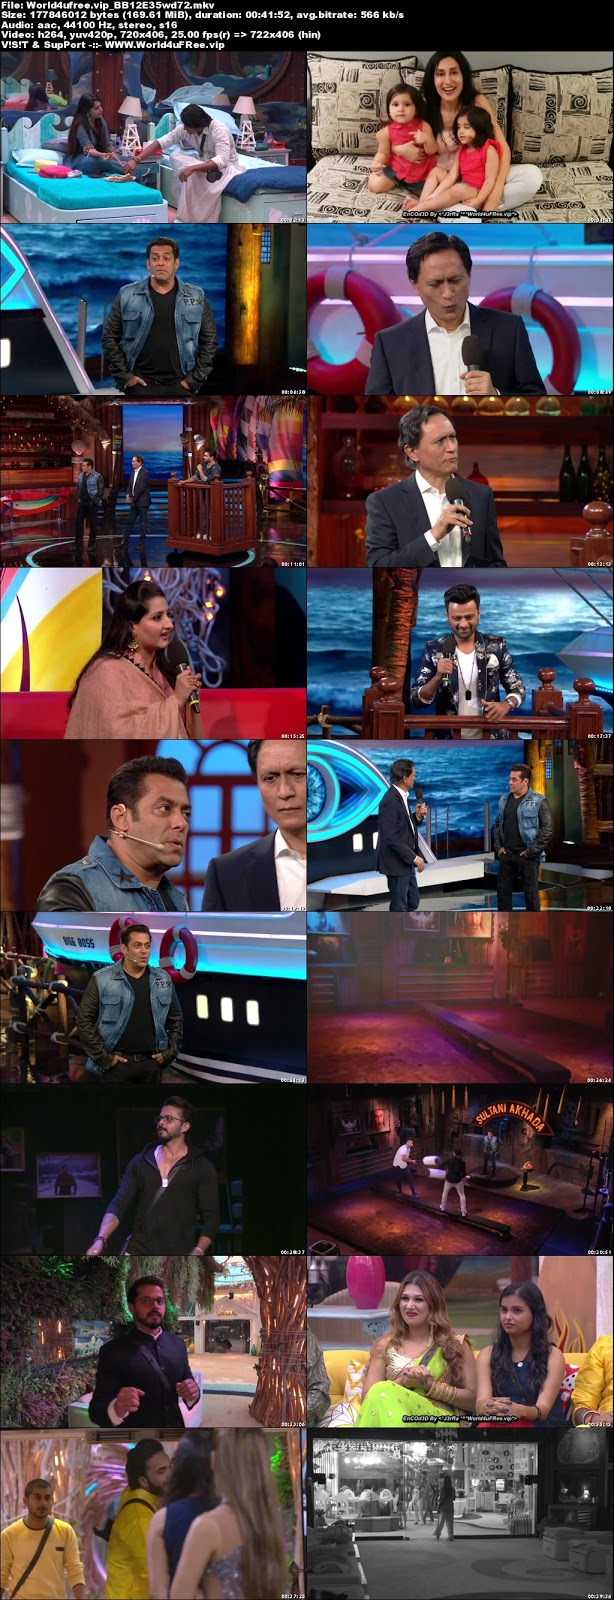 Bigg Boss 12 Episode 35 21 October 2018 720p WEBRip 350mb x264 world4ufree.vip tv show Episode 35 21 October 2018 world4ufree.vip 300mb 250mb 300mb compressed small size free download or watch online at world4ufree.vip